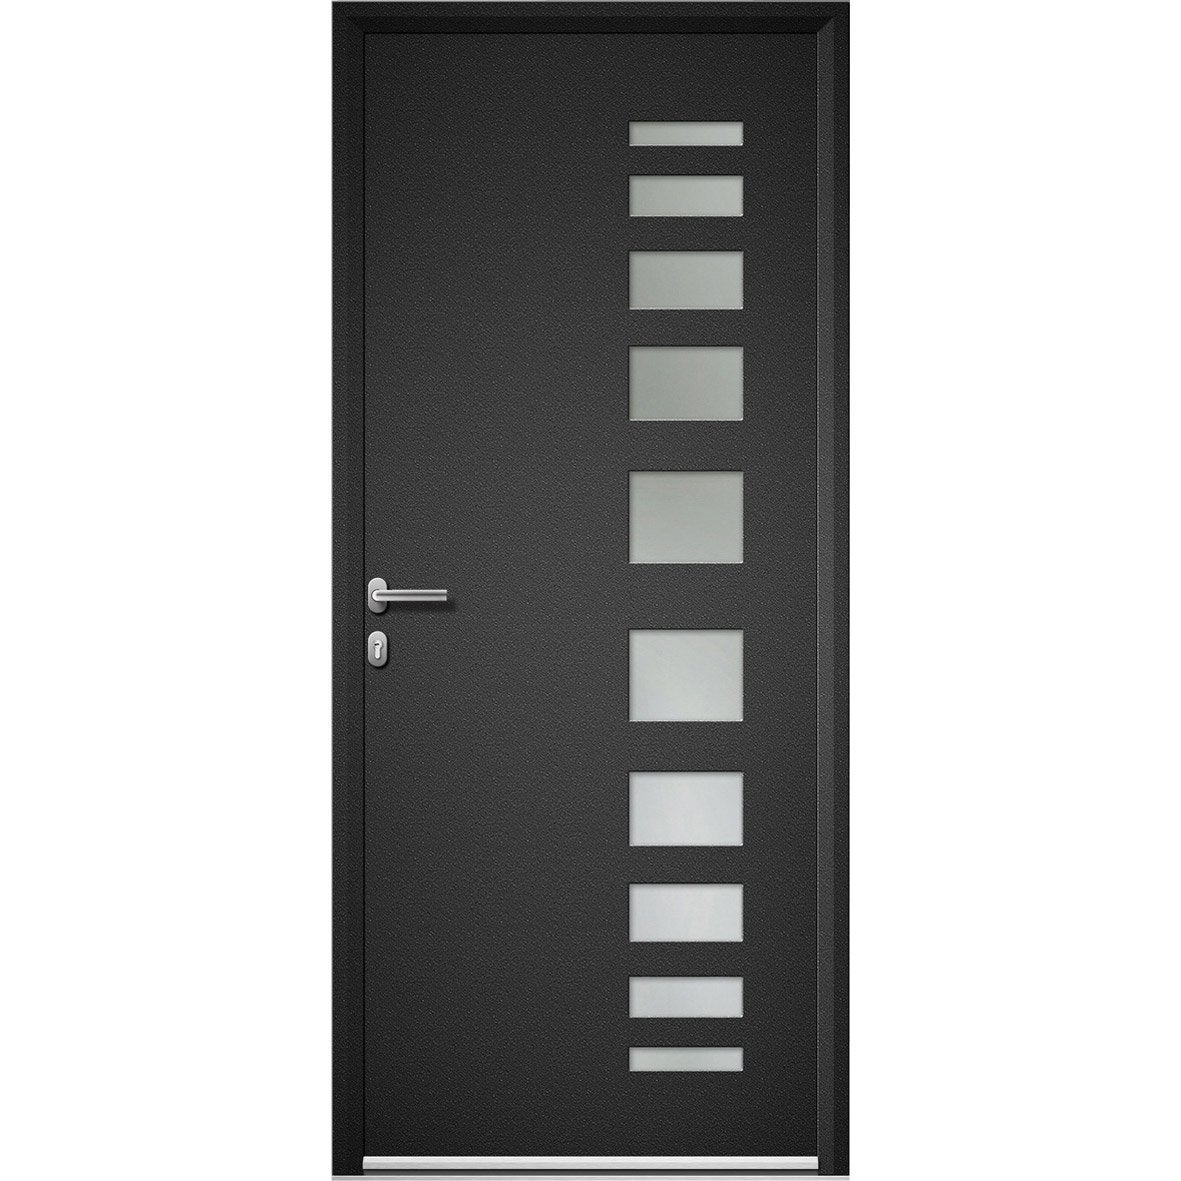 porte d 39 entr e sur mesure en aluminium portland artens leroy merlin. Black Bedroom Furniture Sets. Home Design Ideas